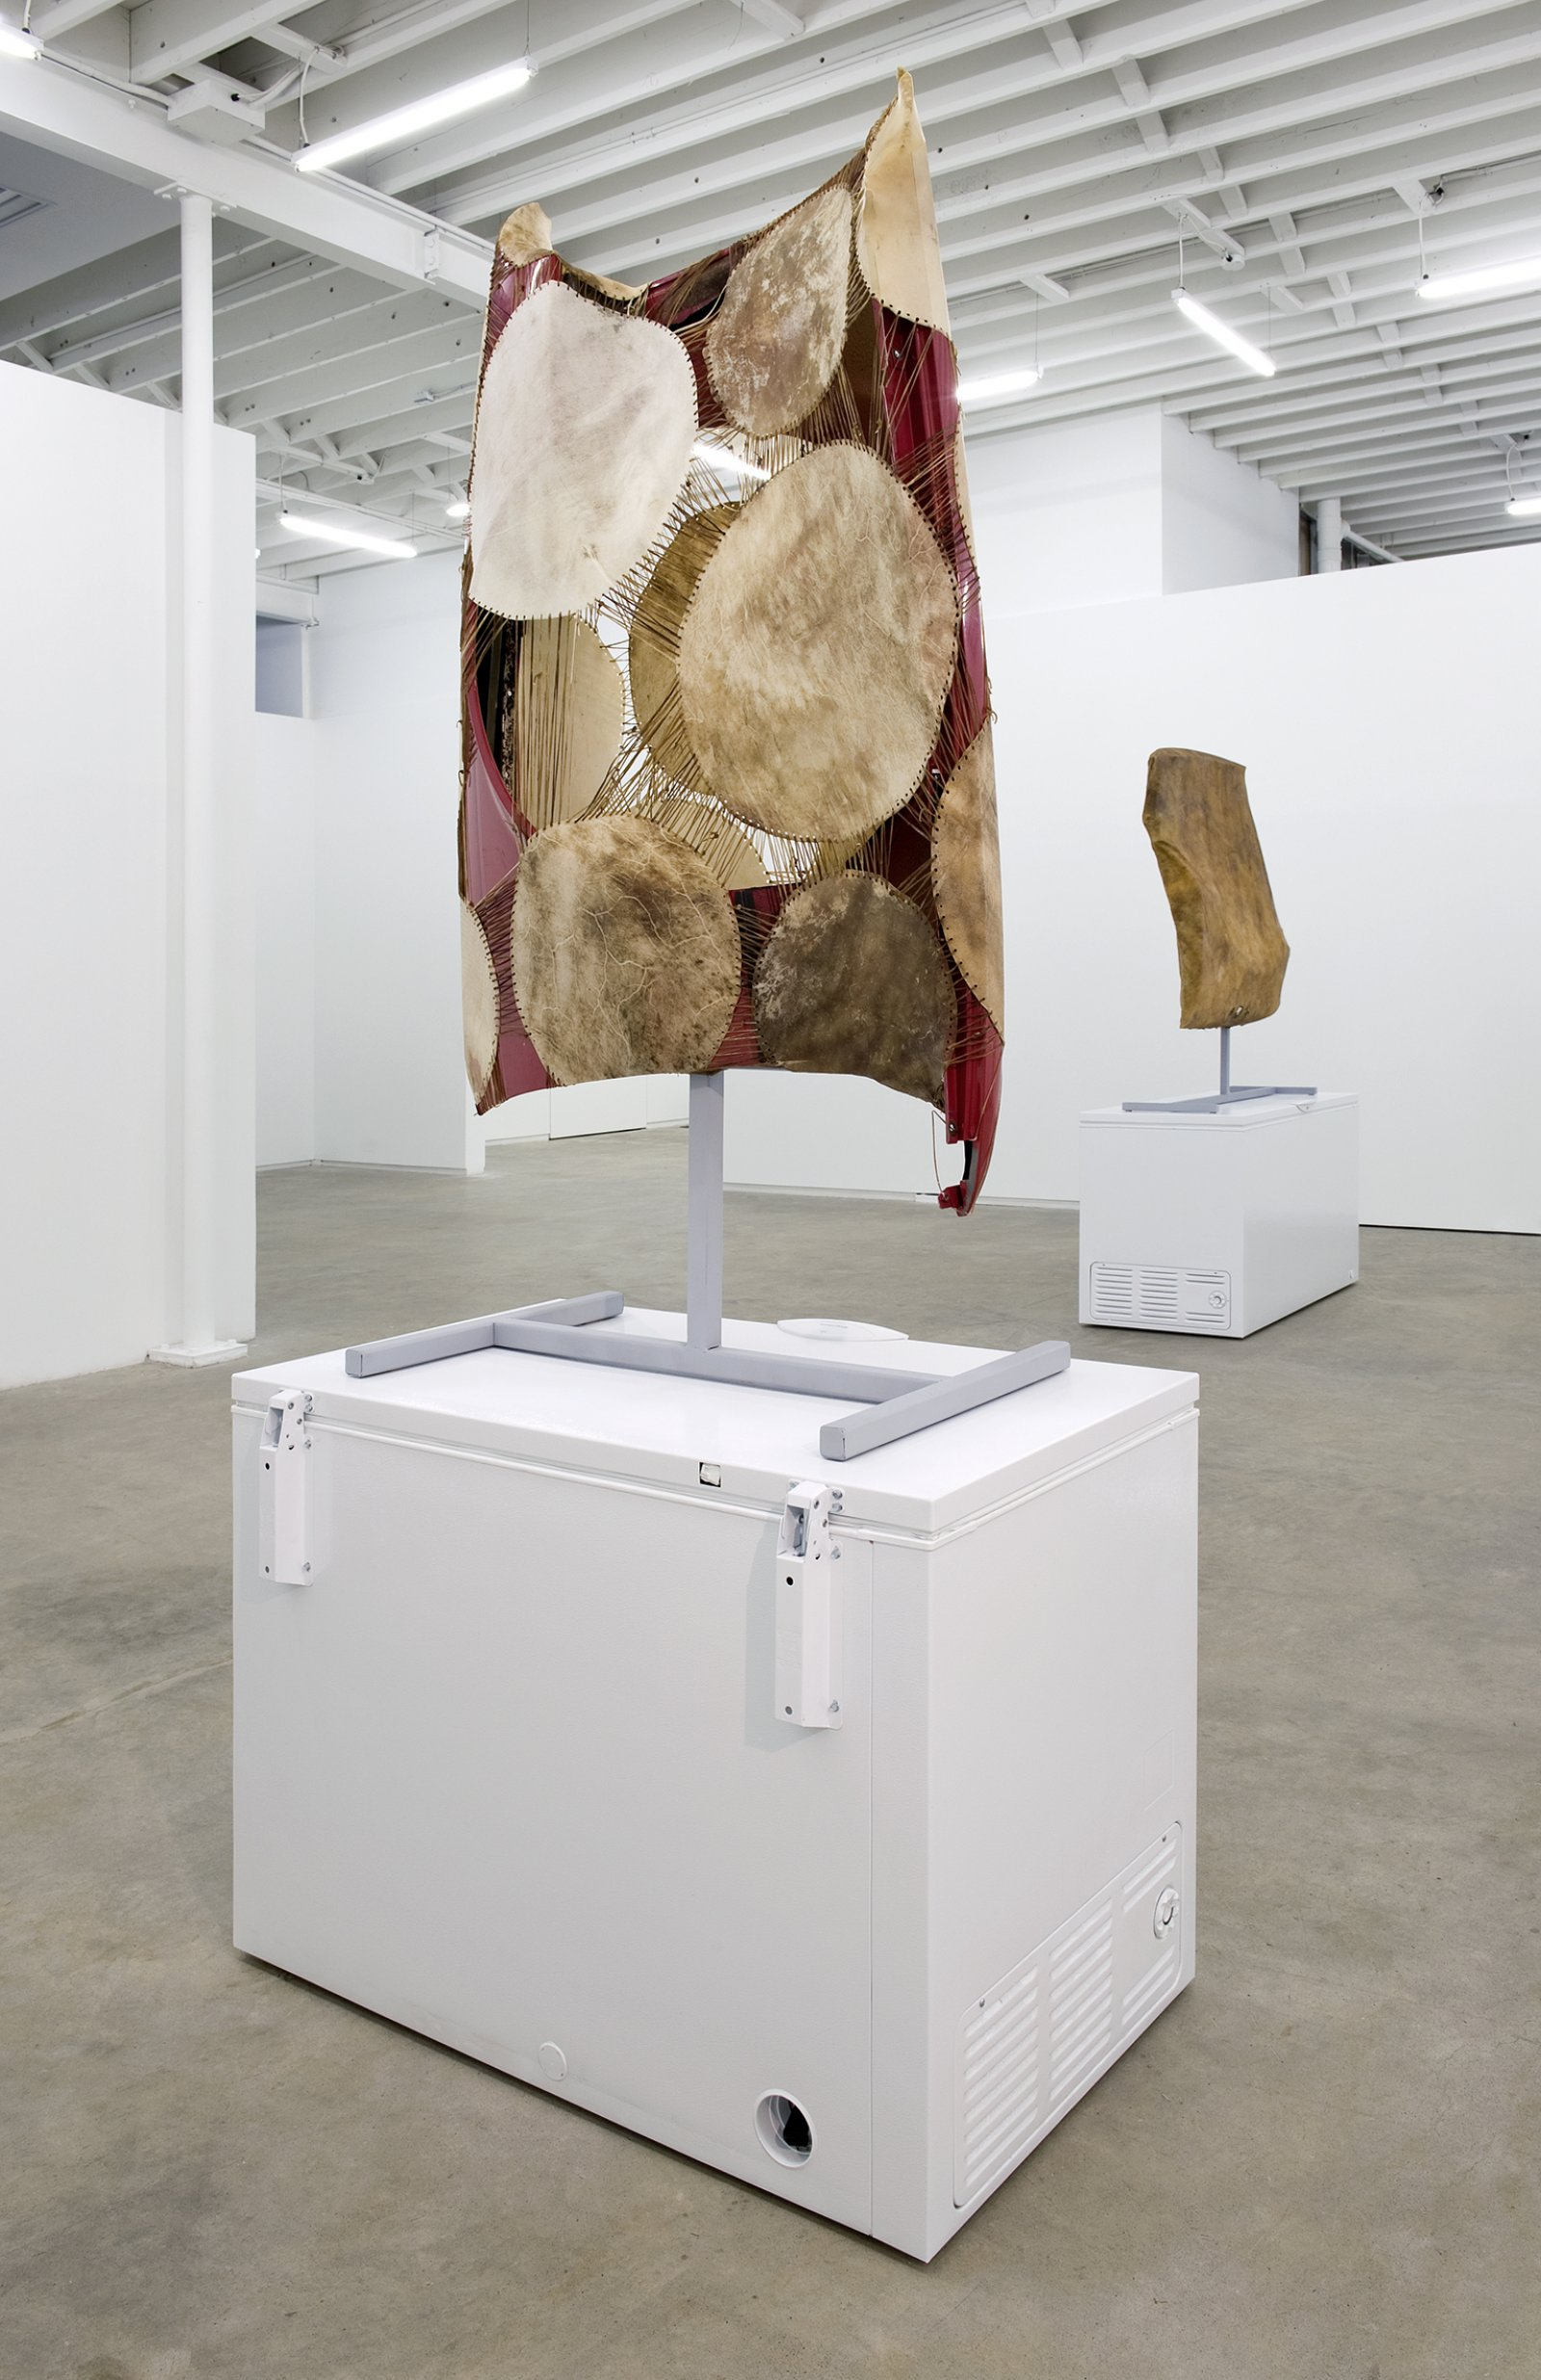 Brian Jungen, The Men of My Family, 2010, moose and deer hide, car fenders, chest freezer, steel 106 x 48 x 30 in. (269 x 122 x 76 cm) by Brian Jungen